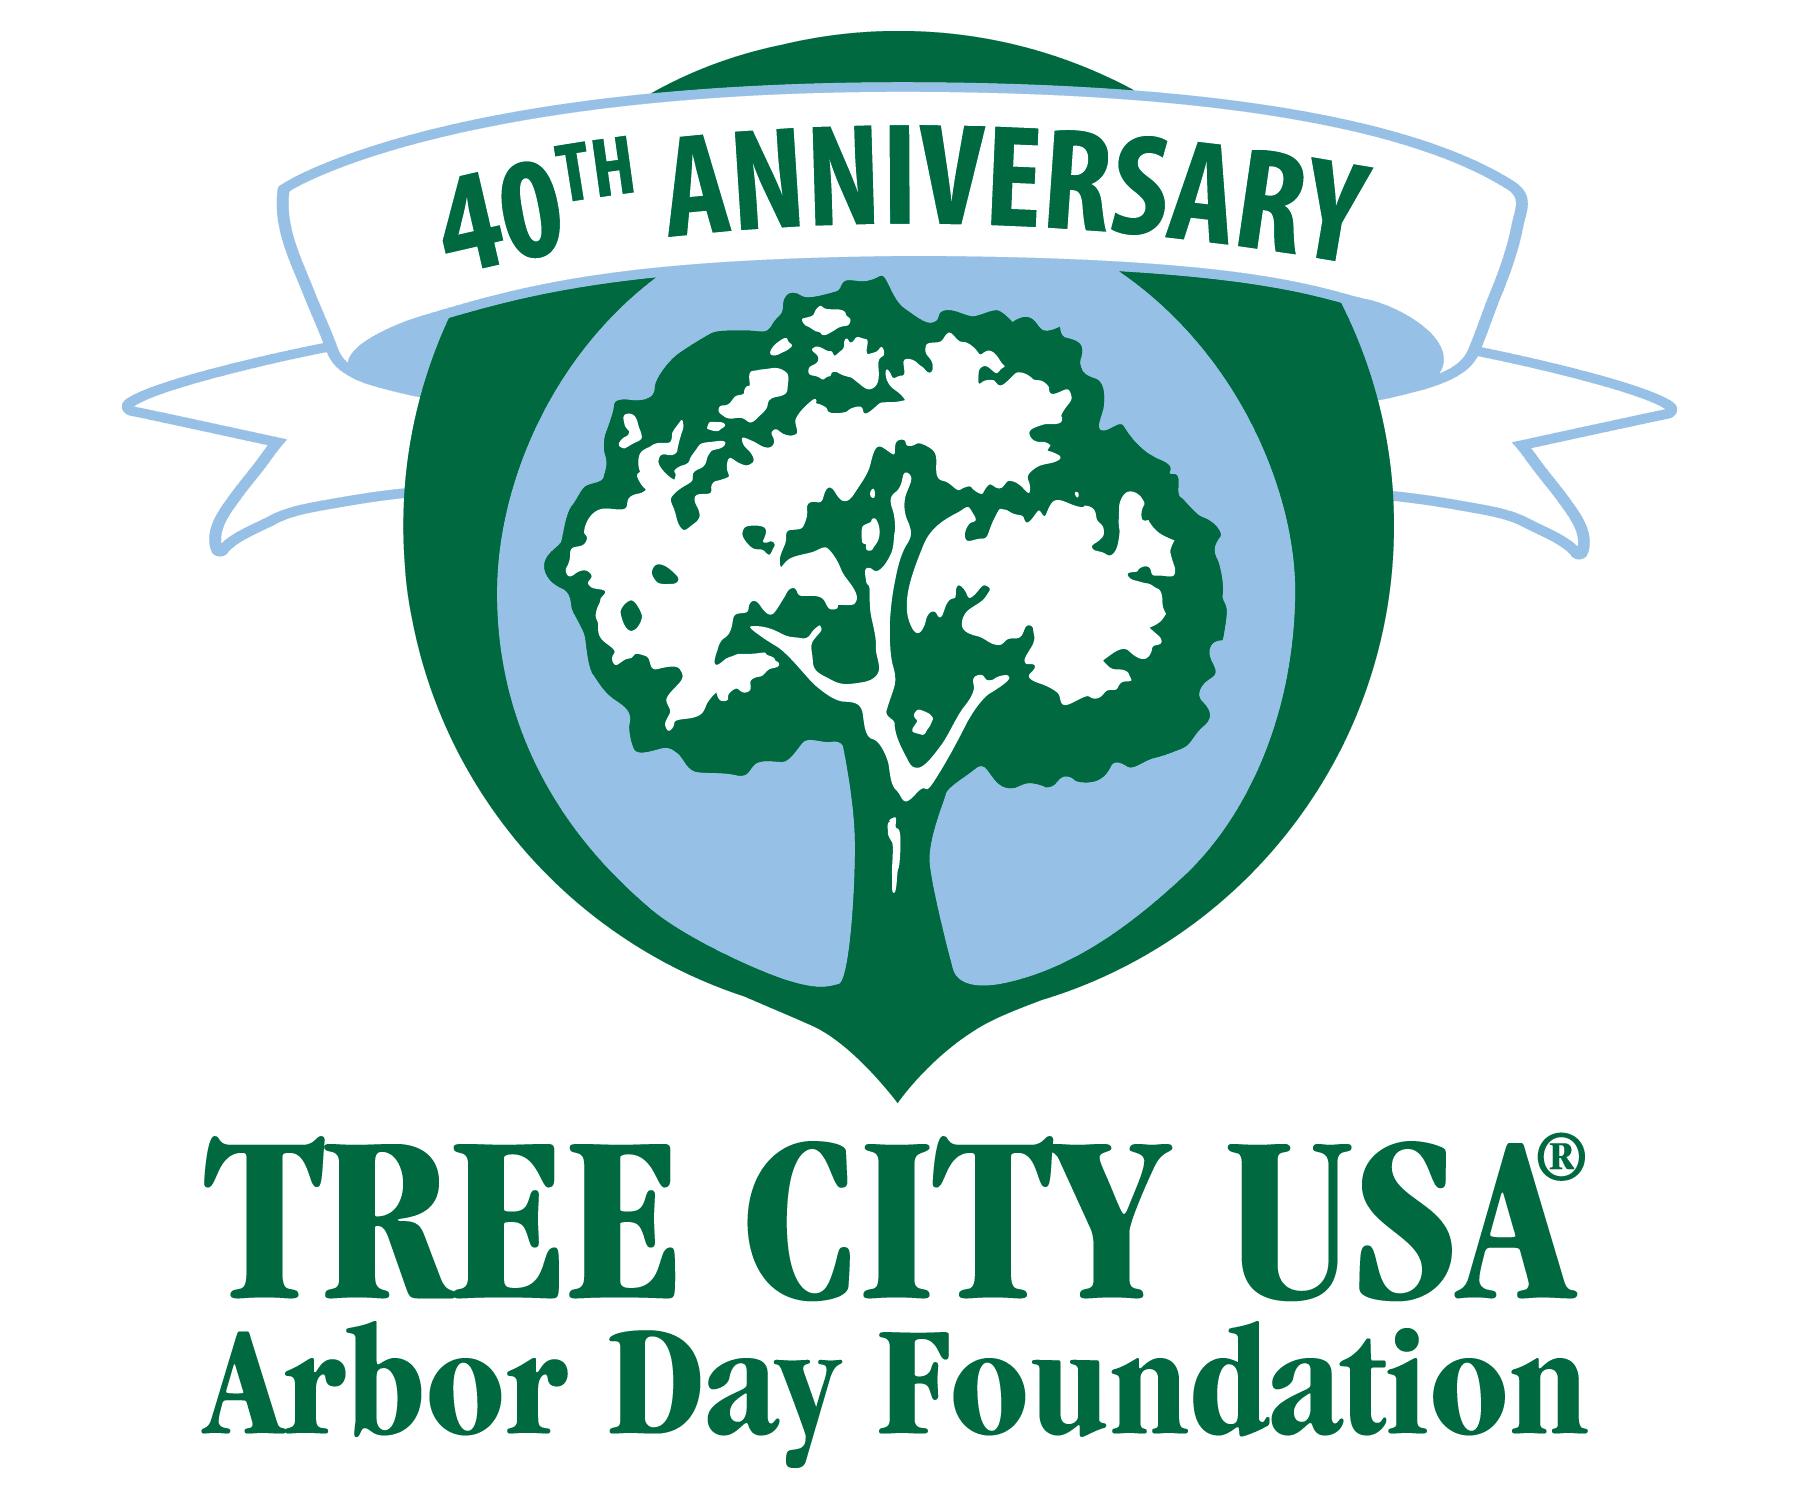 Tree City USA 40th Anniversary Opens in new window